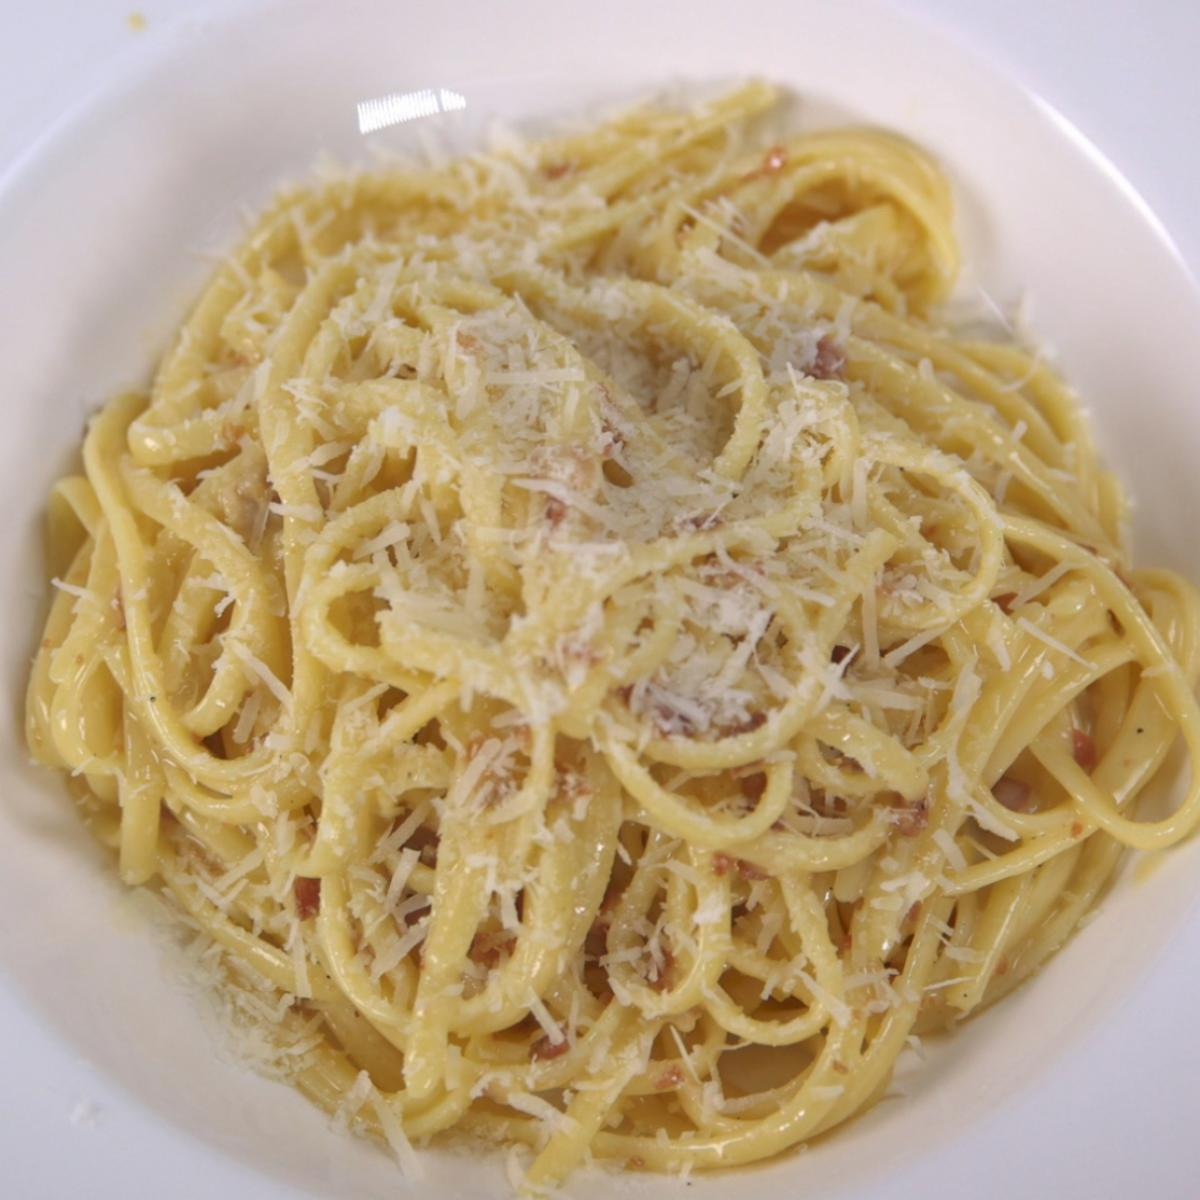 A picture of Delia's Pasta alla Carbonara recipe